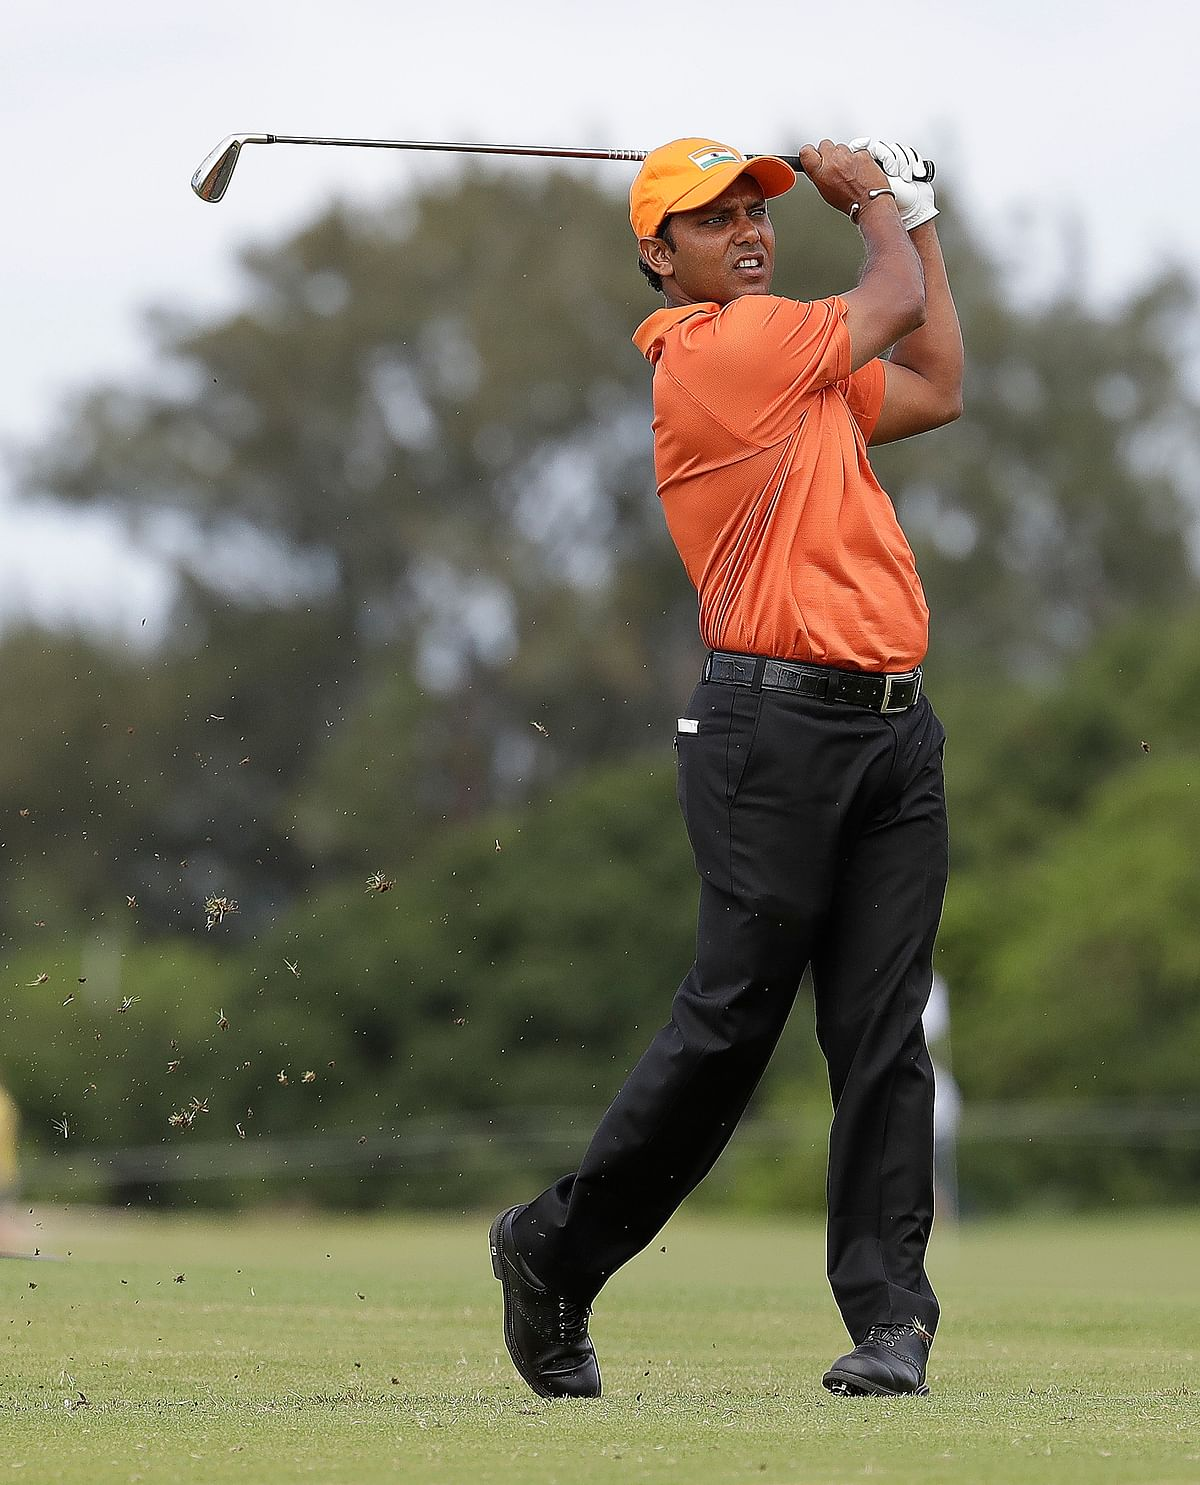 SSP Chawrasia during the opening round of Golf at the Rio Olympics. (Photo: AP)